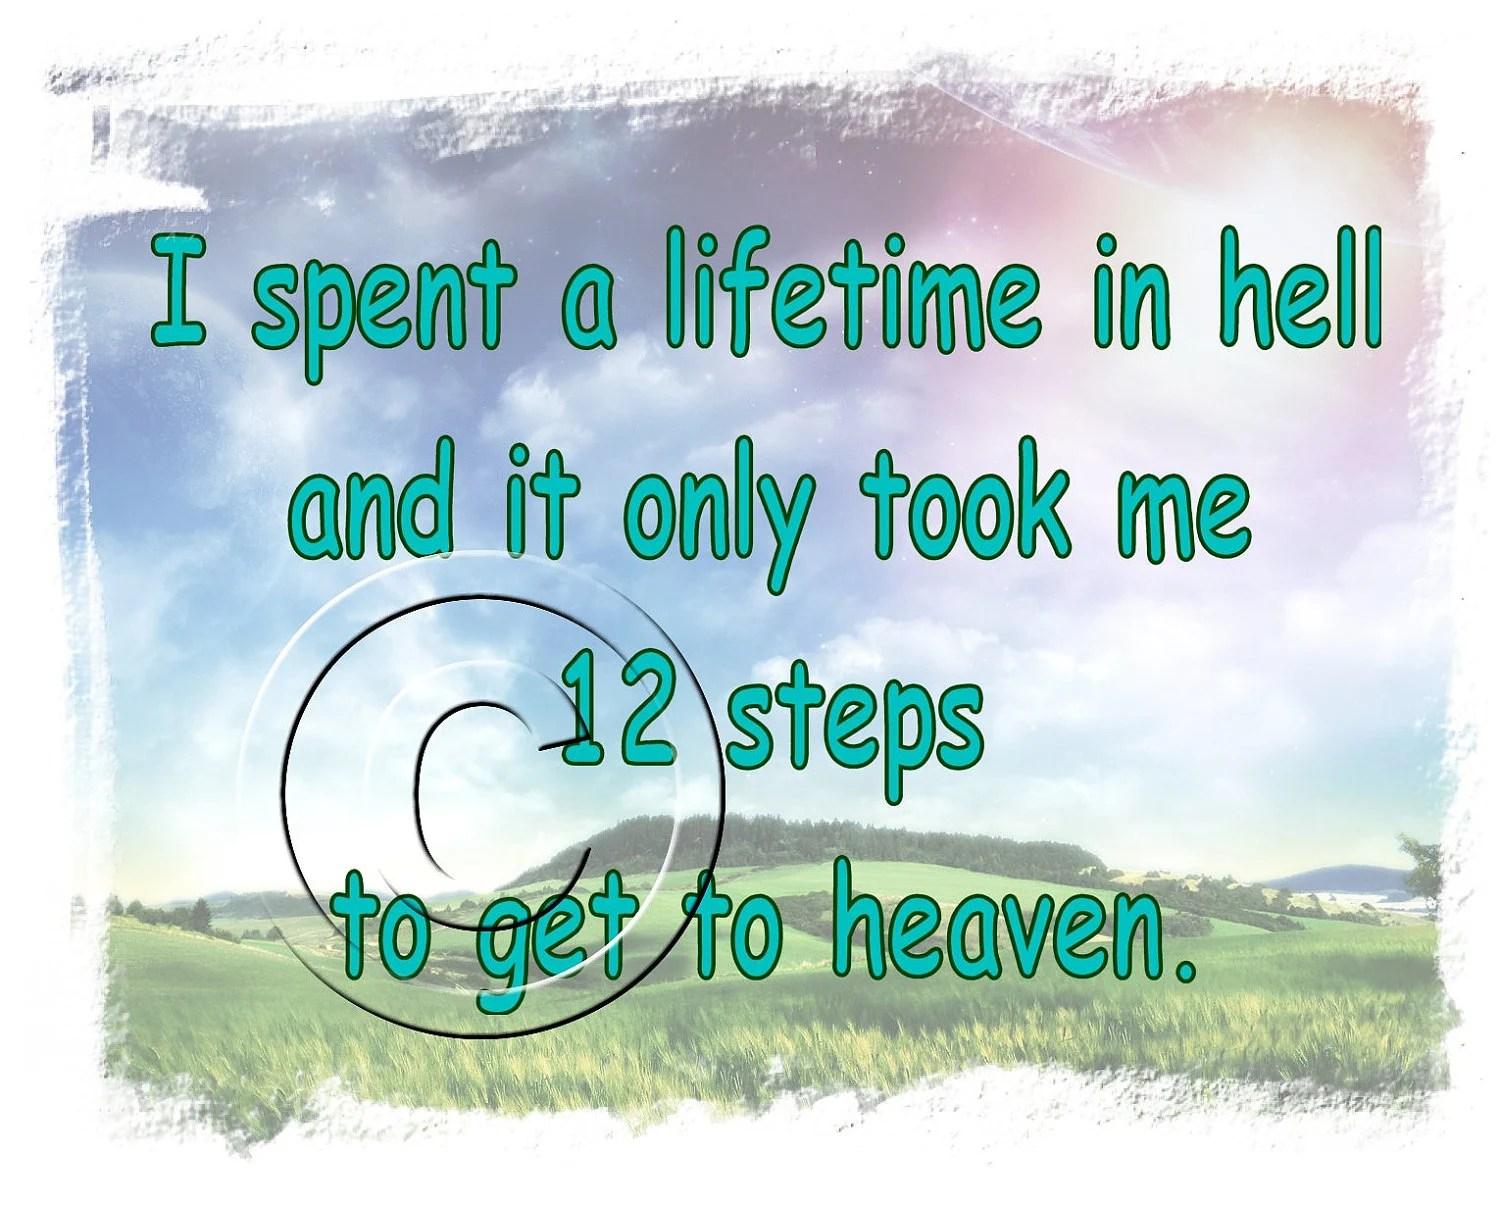 Alcoholics Anonymous Recovery Inspirational Digital Prints